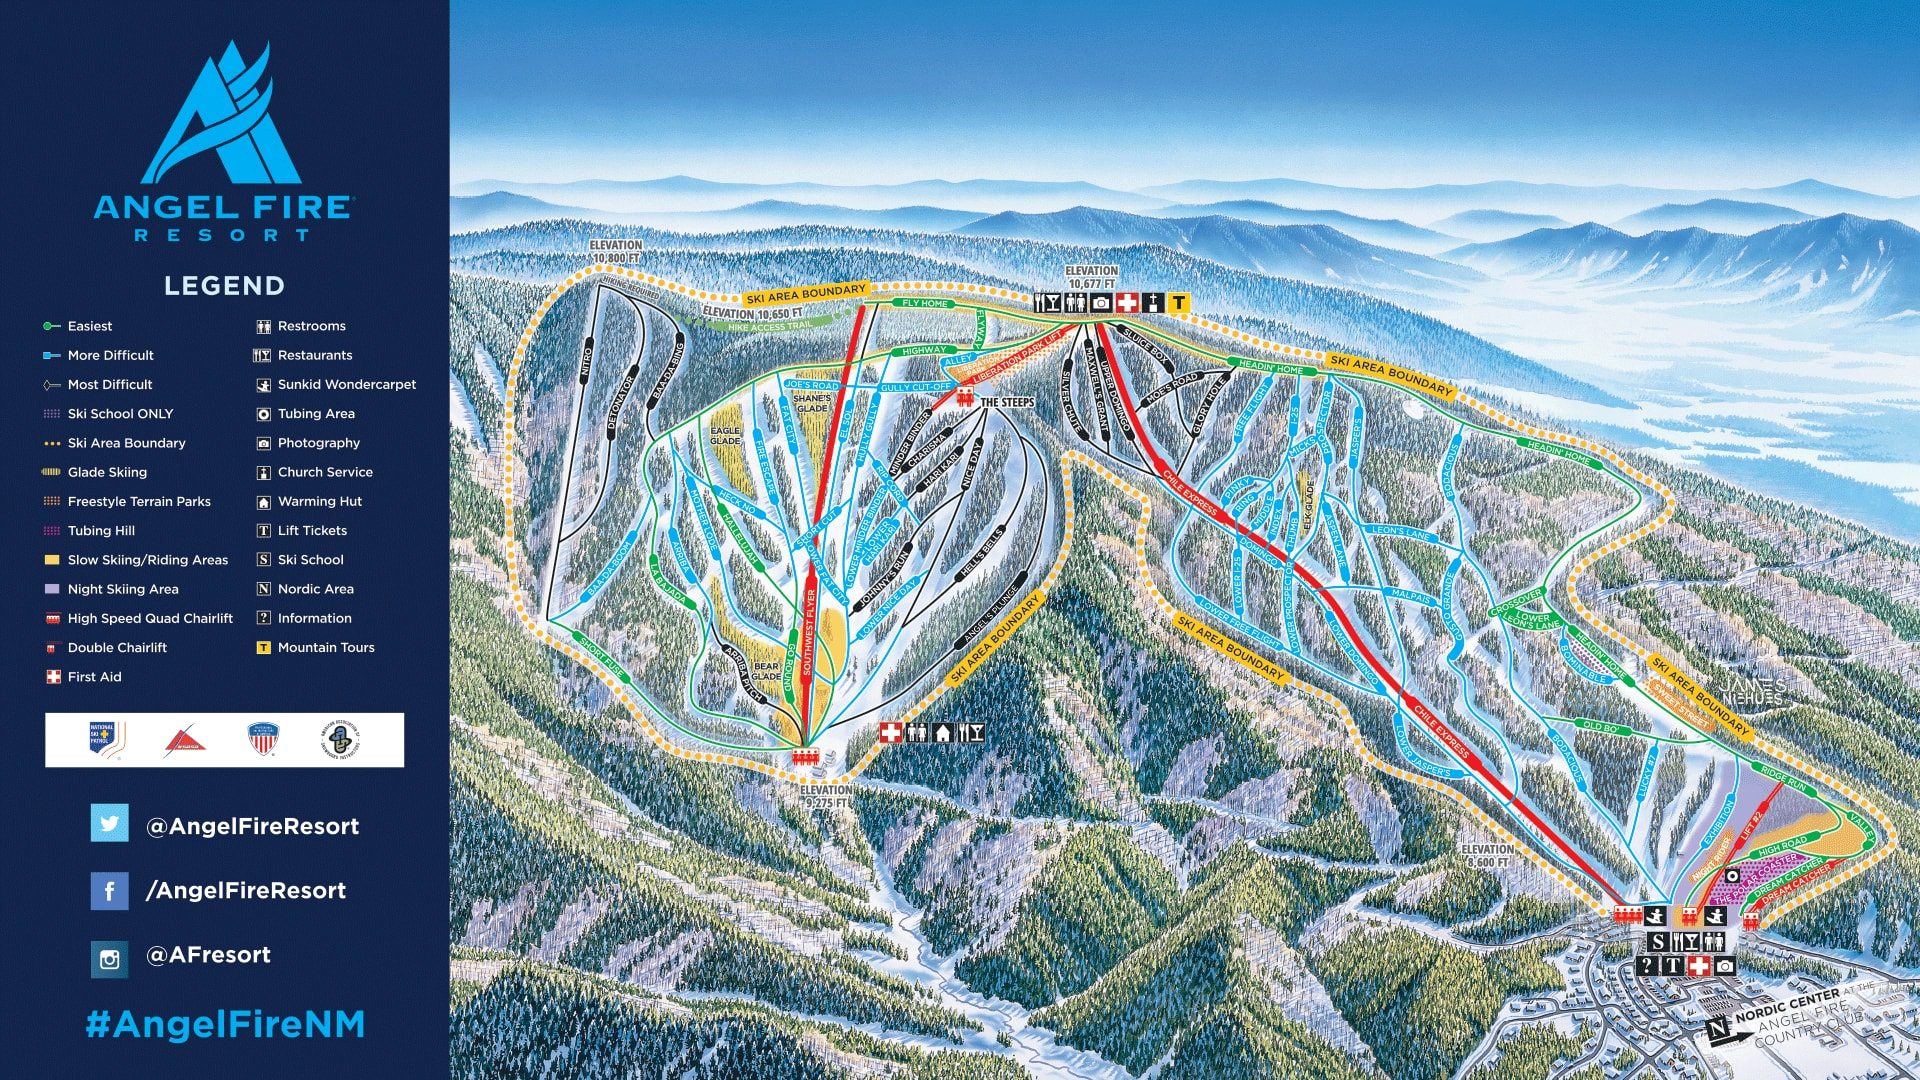 Angel Fire Resort Piste / Trail Map